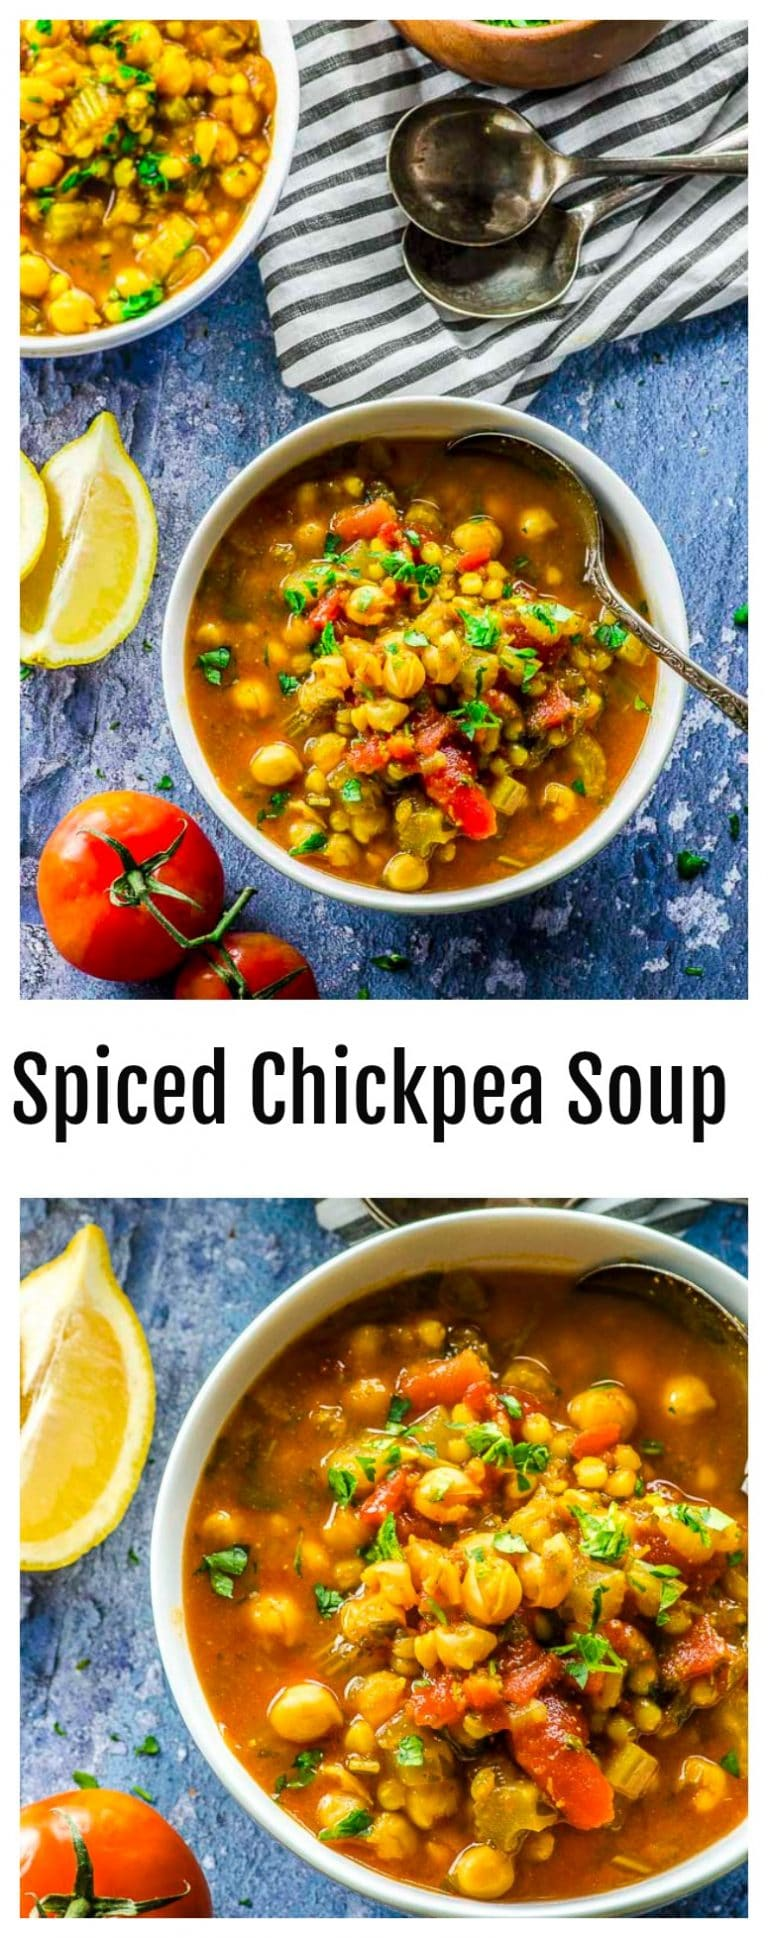 This satisfying and body-warming Wheat Berry and Chickpea Soup features the humble and antioxidant-rich chickpea, making it your best defense against flu and cold season.